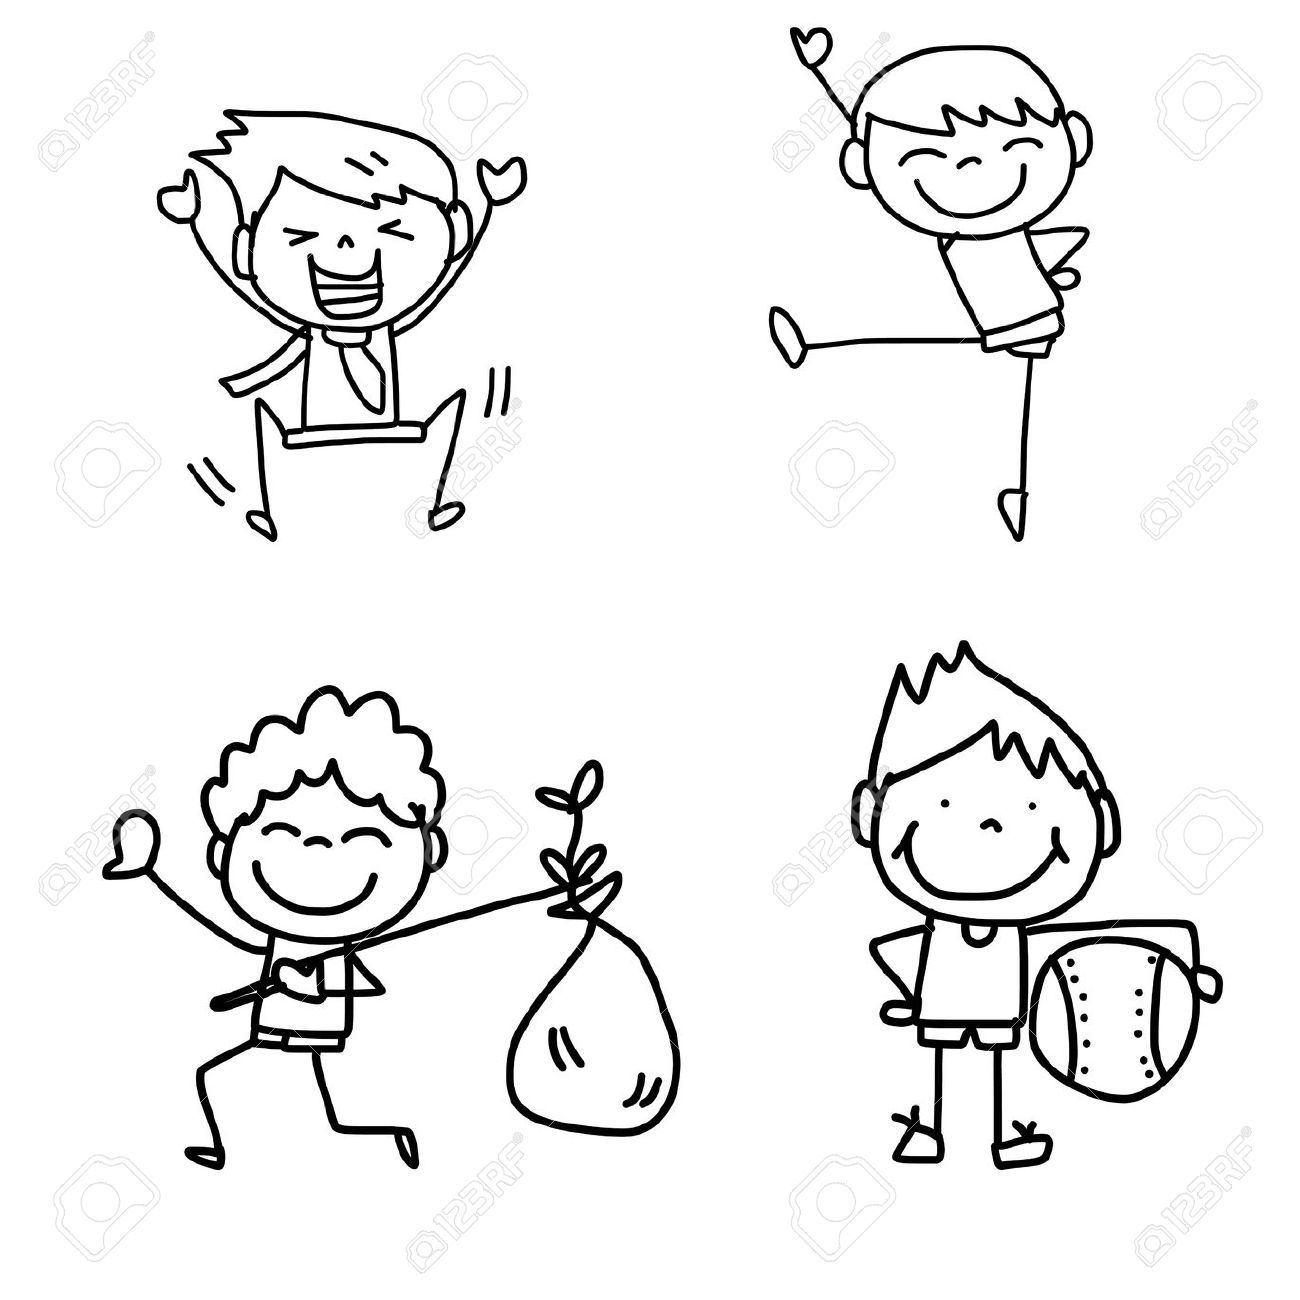 hand drawing cartoon happy kids playing royalty free cliparts